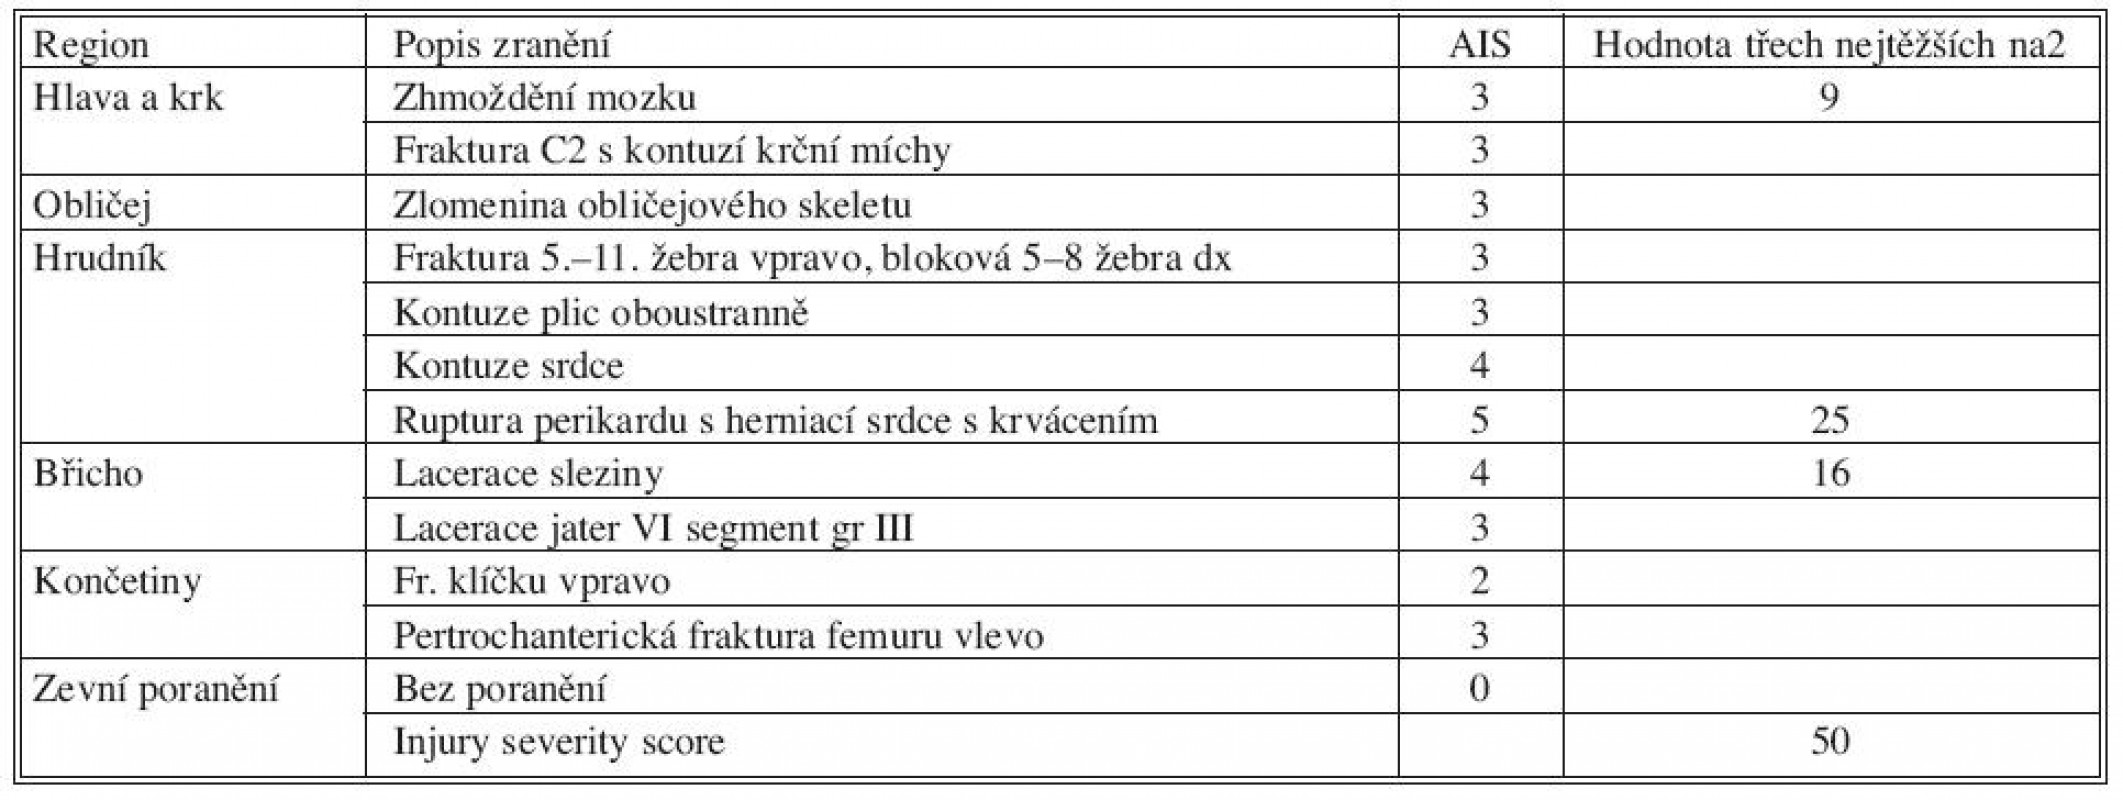 Hodnocení ISS Tab. 1. ISS assessment